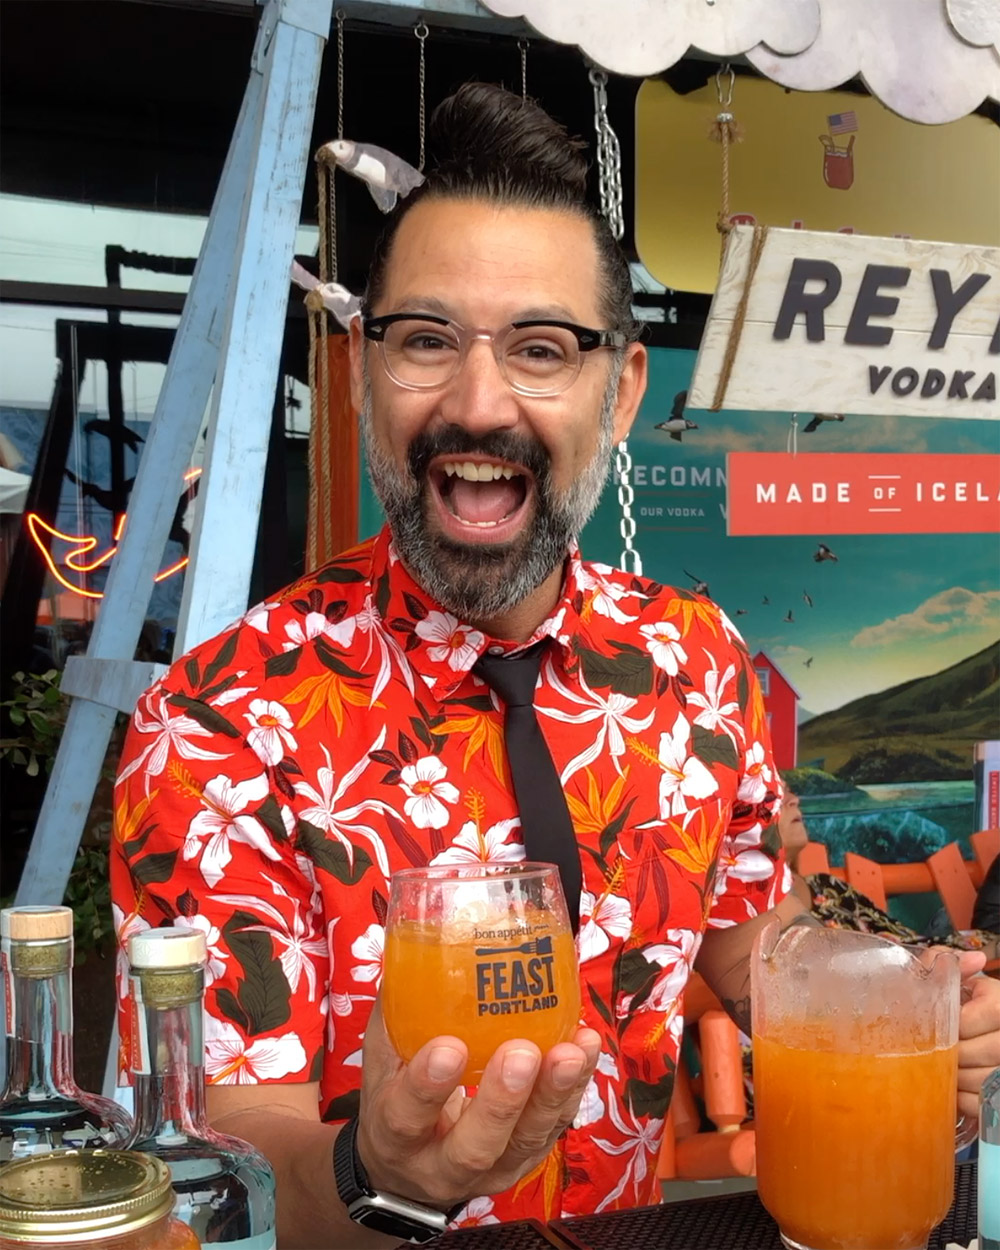 Feast 2019: Cocktail Ninja, Reyka Vodka